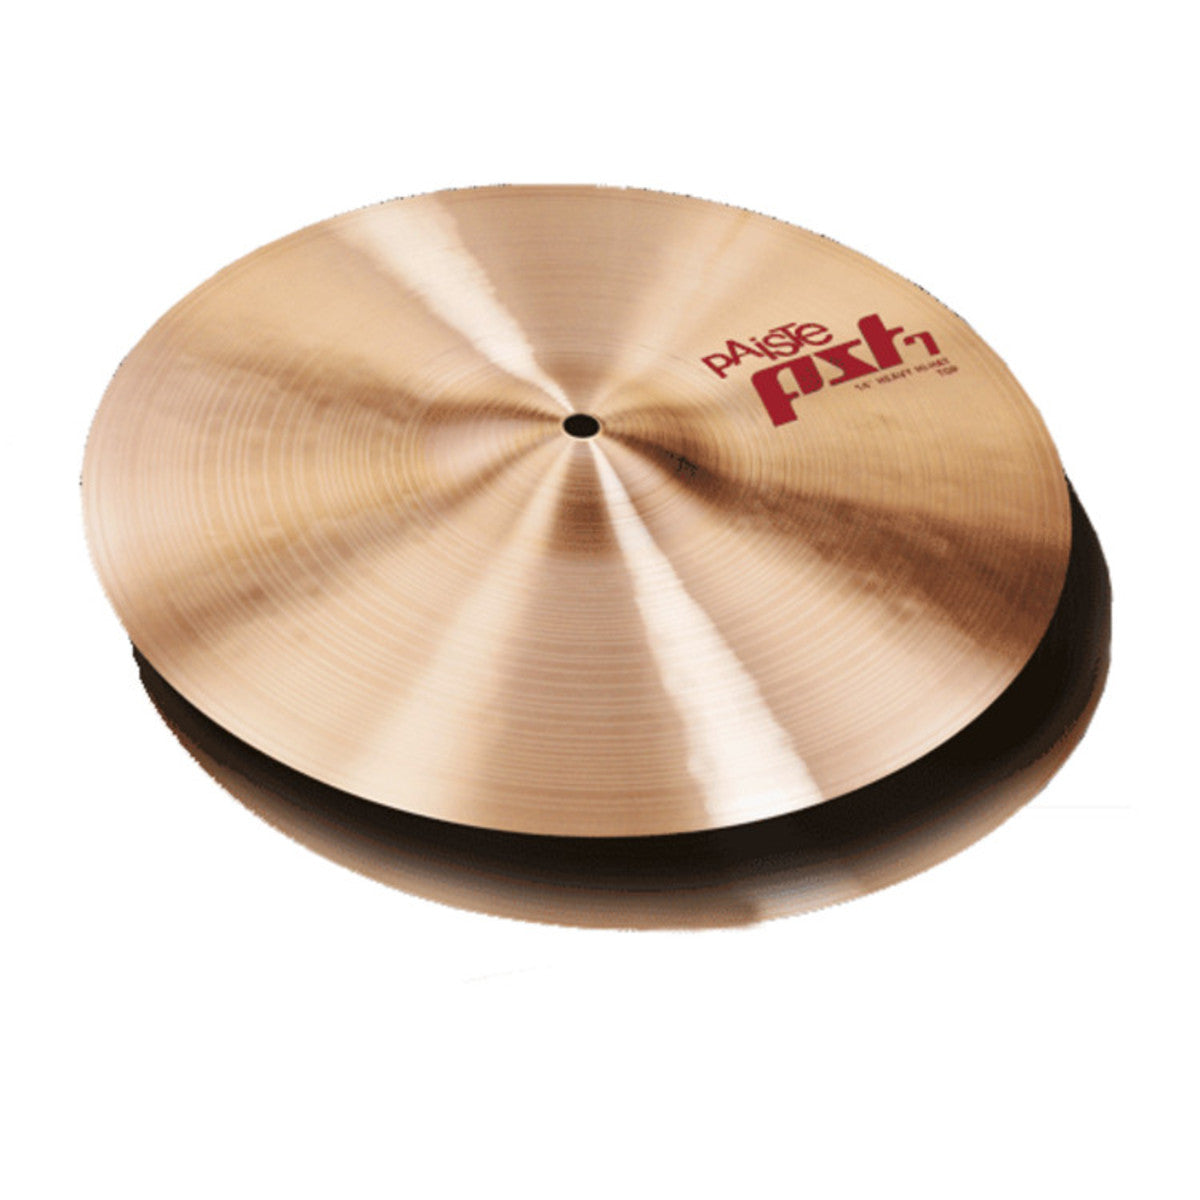 "Paiste PST7 14"" Heavy Hi-Hat Cymbals 